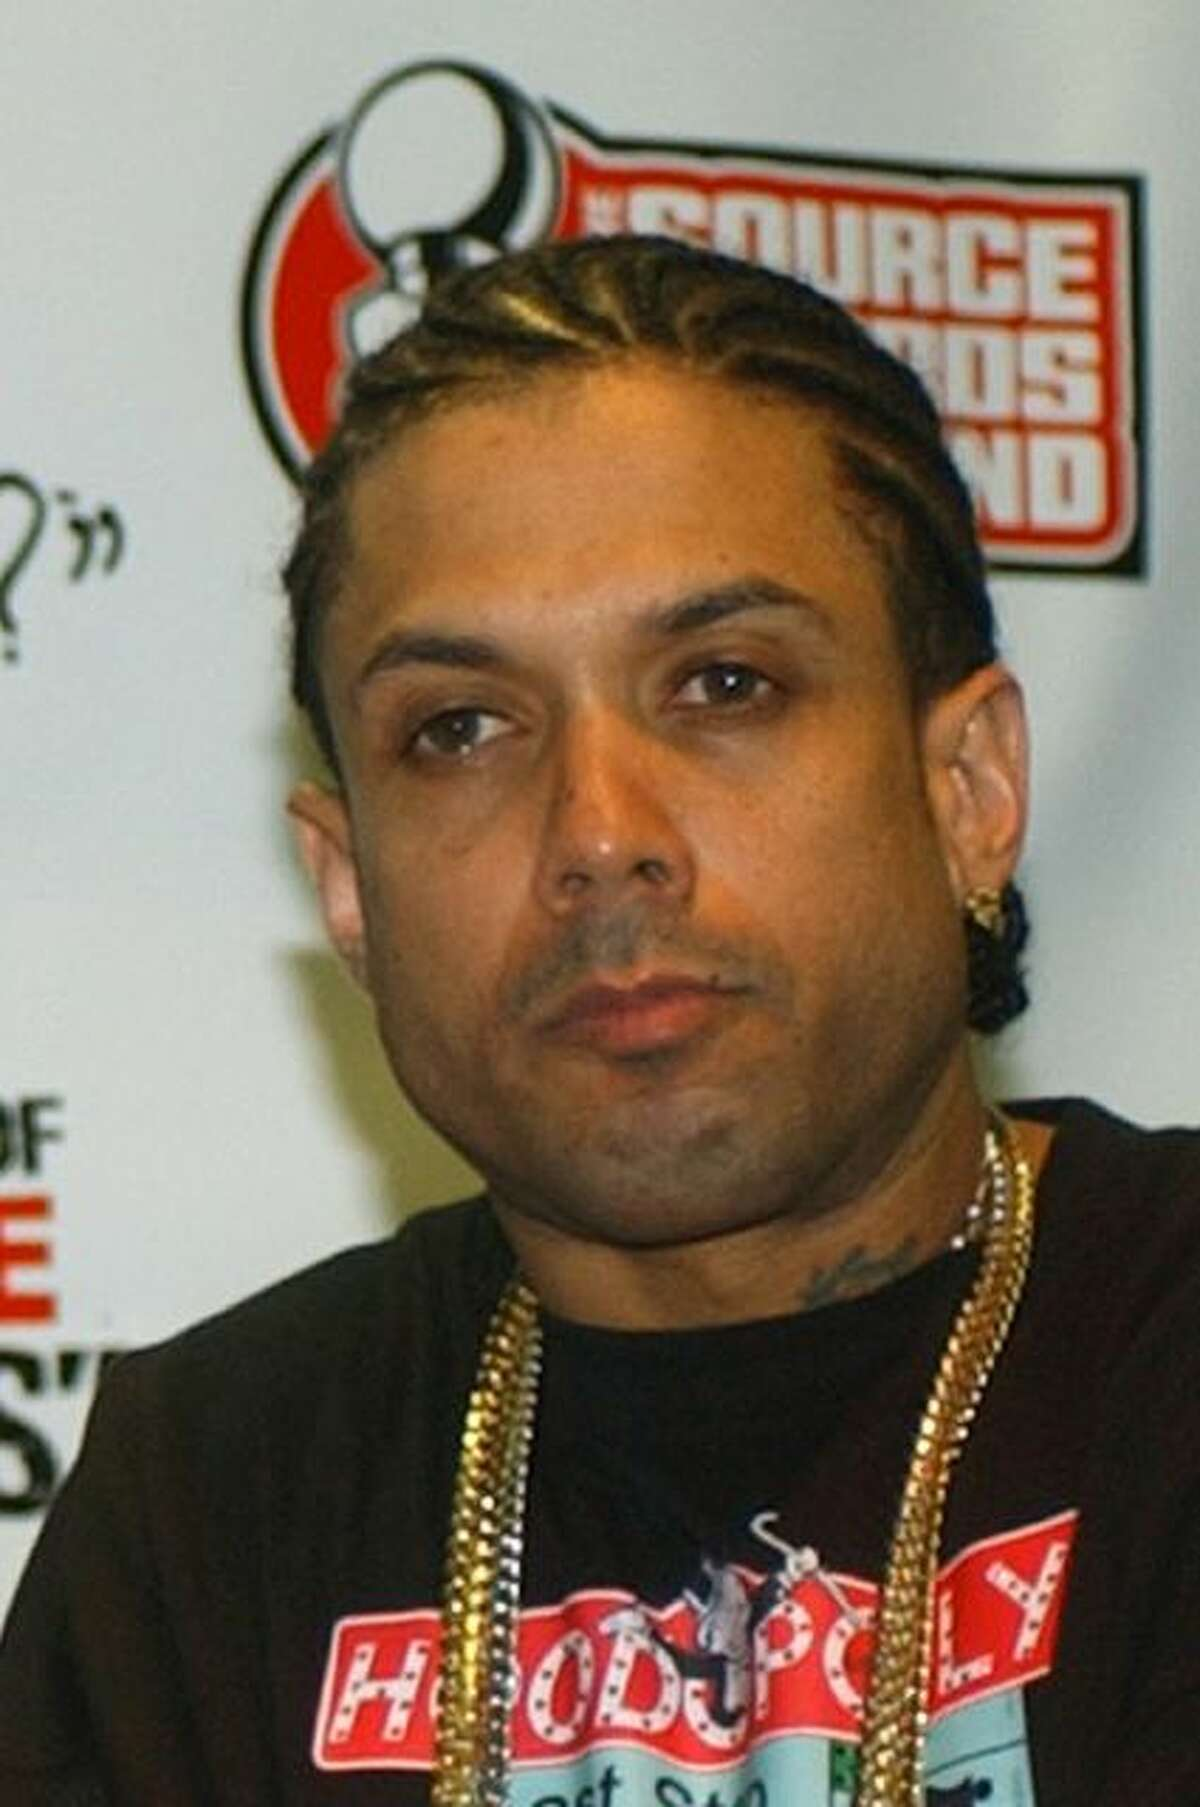 """File - This Oct. 10, 2004 file photo shows and Ray Benzino at the Source Hip-Hop Music Awards in Miami. Authorities say the reality TV star and rapper was shot and injured by his nephew while in a funeral procession for a family member in Massachusetts. Benzino, whose real name is Raymond Scott, is a cast member of the VH1 reality show """"Love & Hip Hop: Atlanta"""" and former co-owner of The Source magazine. (AP Photo/Alan Diaz, File)"""